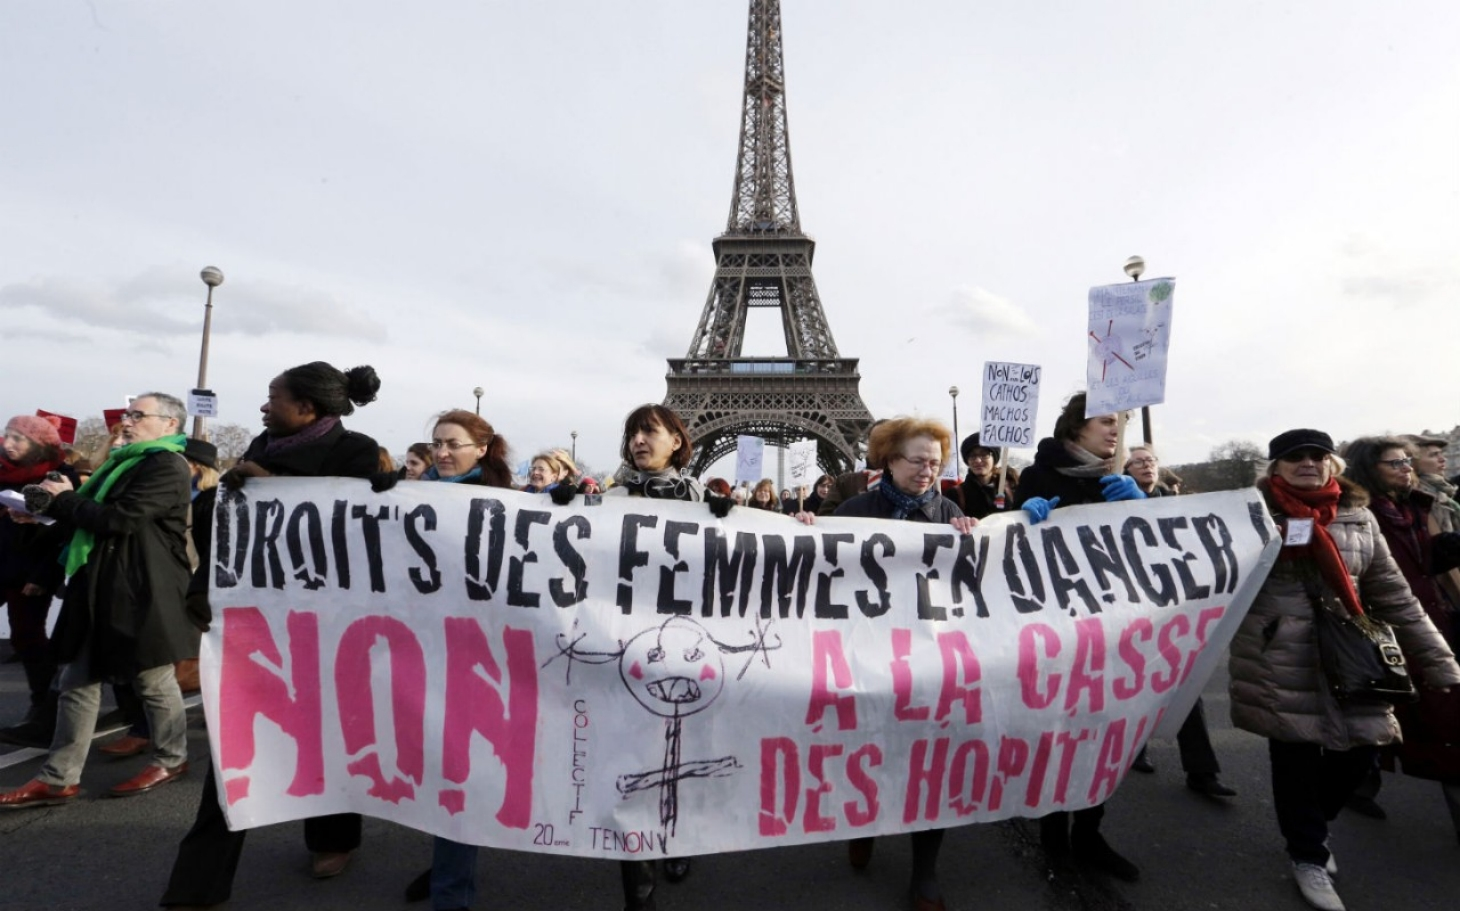 https://i2.wp.com/america.aljazeera.com/content/ajam/articles/2014/8/15/france-passes-sweepinggenderequalitylaw/jcr:content/headlineImage.adapt.1460.high.081514_France.1408103599446.jpg